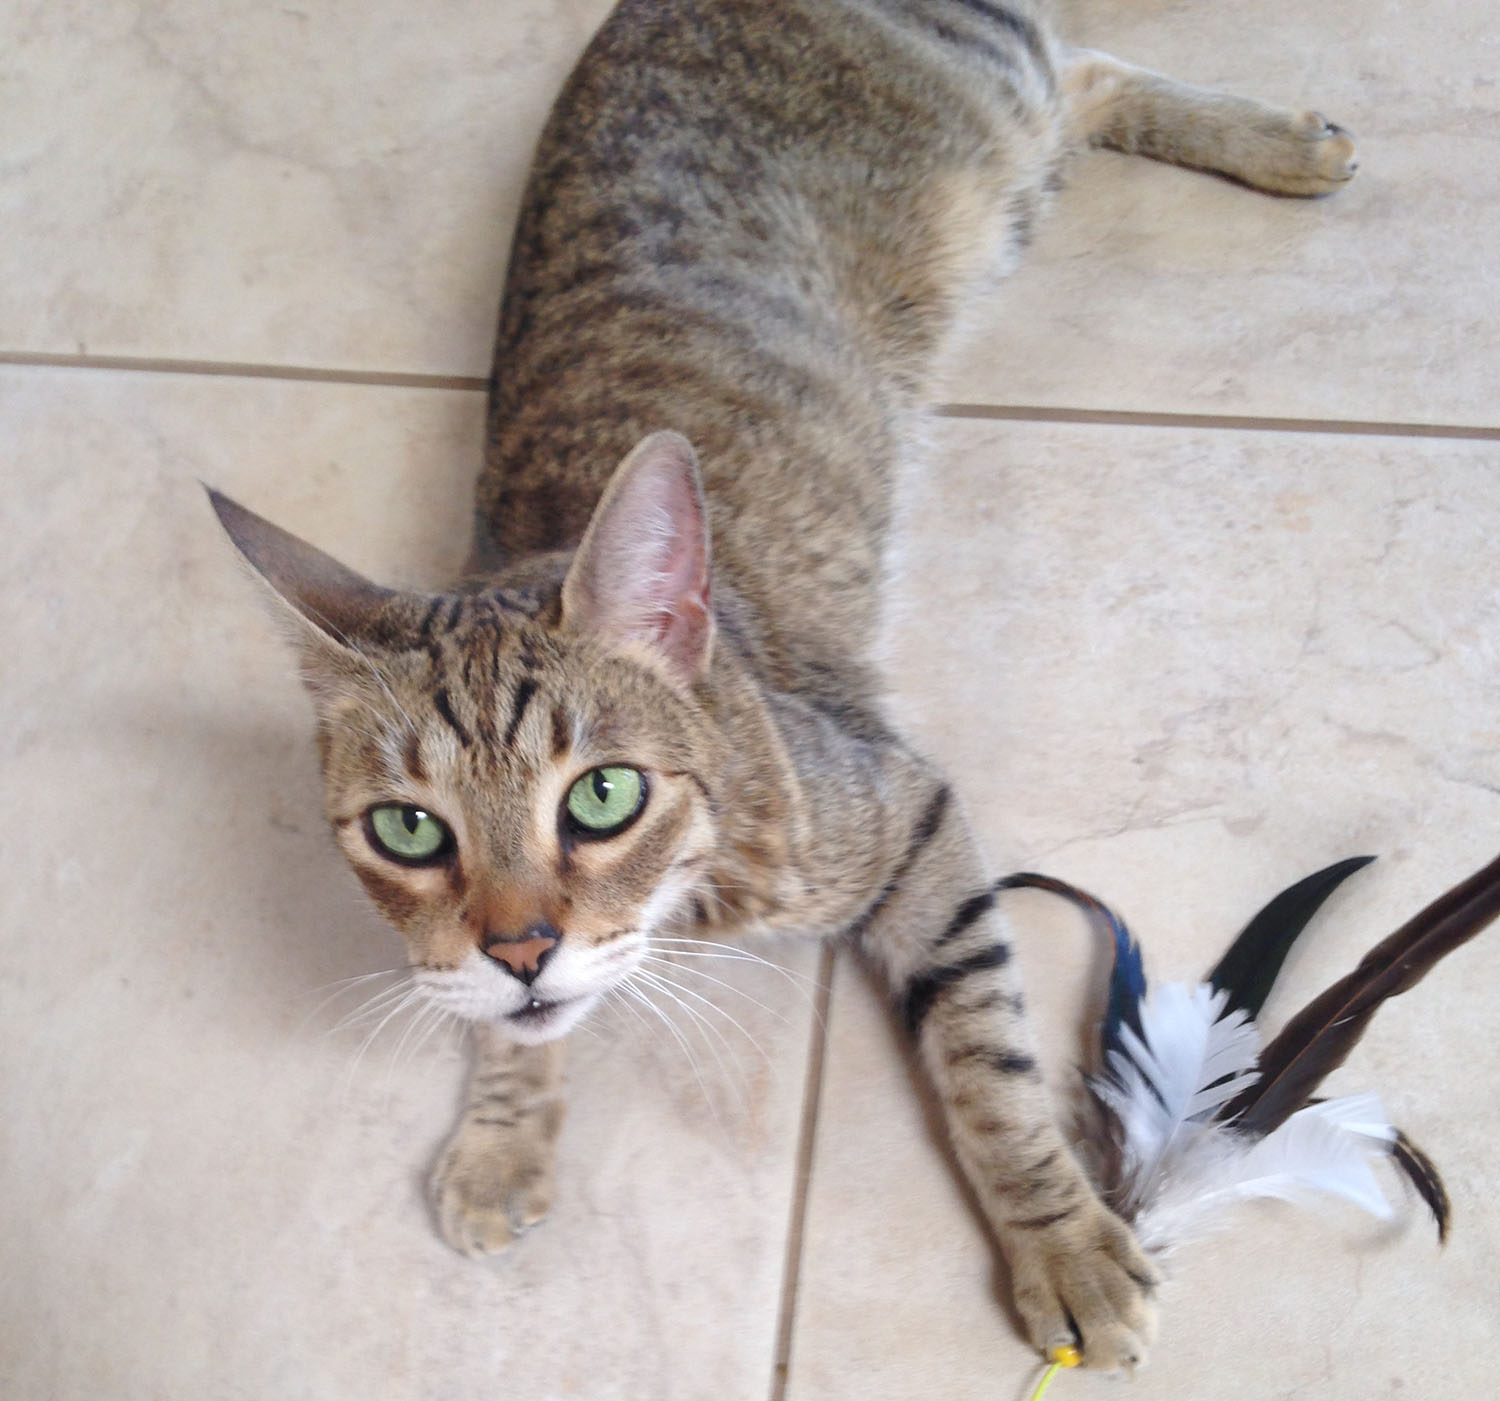 cat-playing-feather-toy.jpg